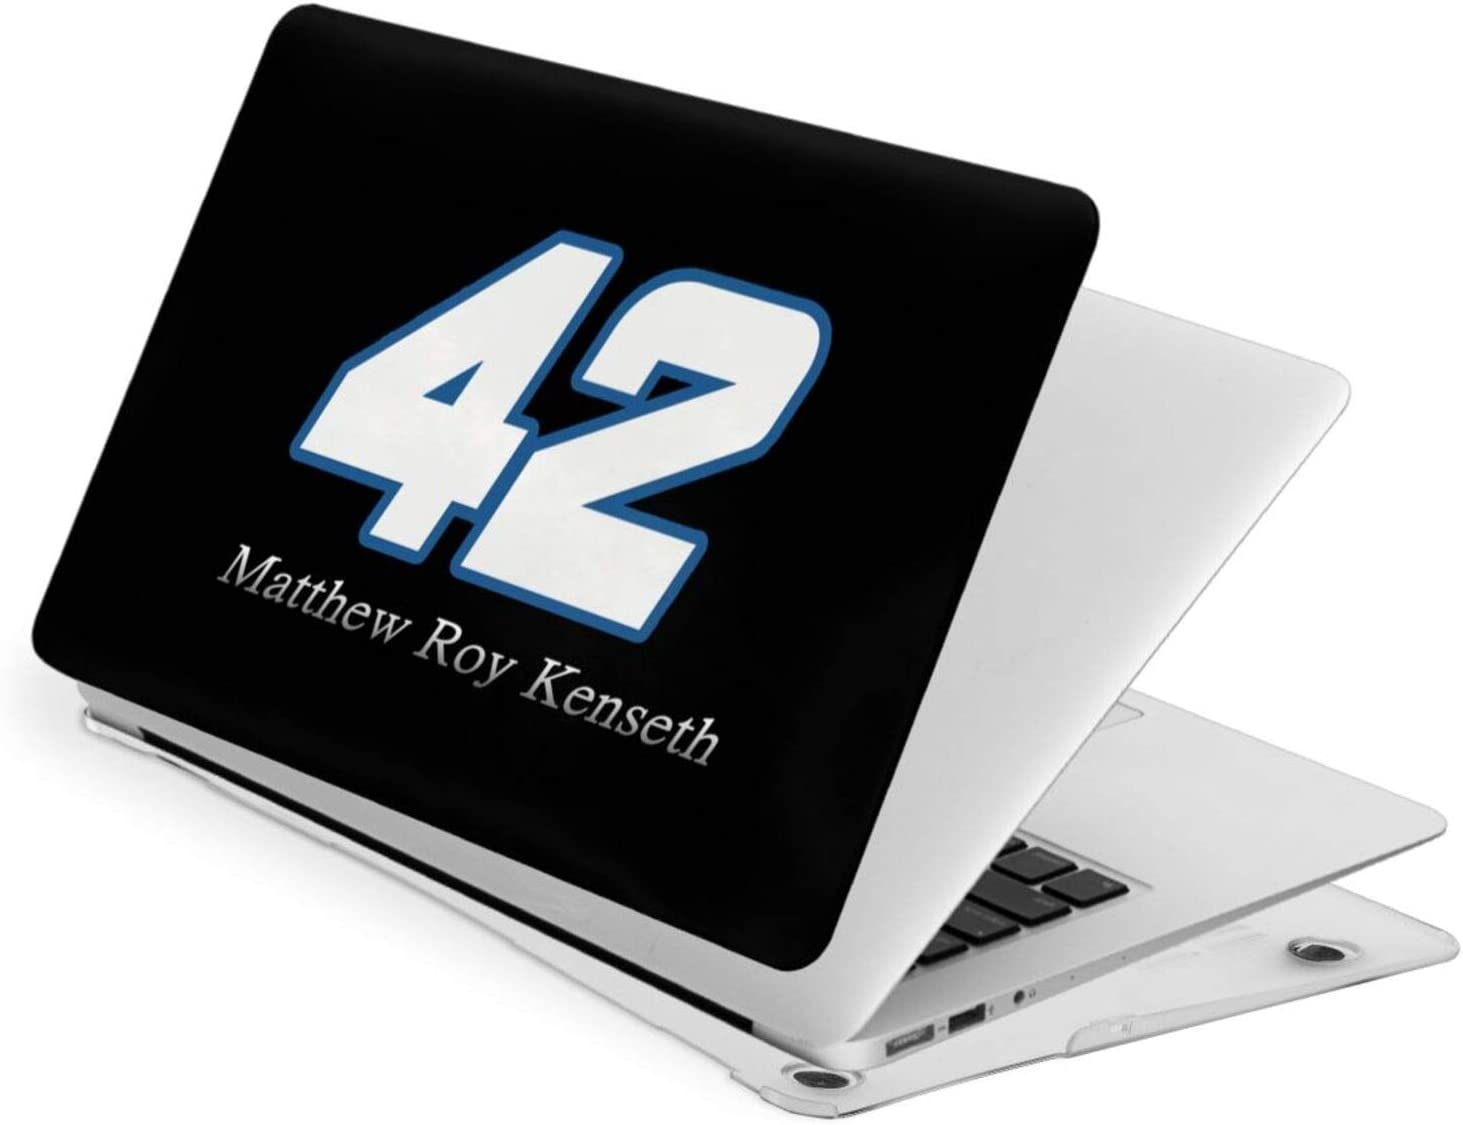 Gerneric Matthew Kenseth Apple Laptop Case Cover,MacBook Air13 Case Cover Plastic Hard Shellcover&Screen Protector Compatible